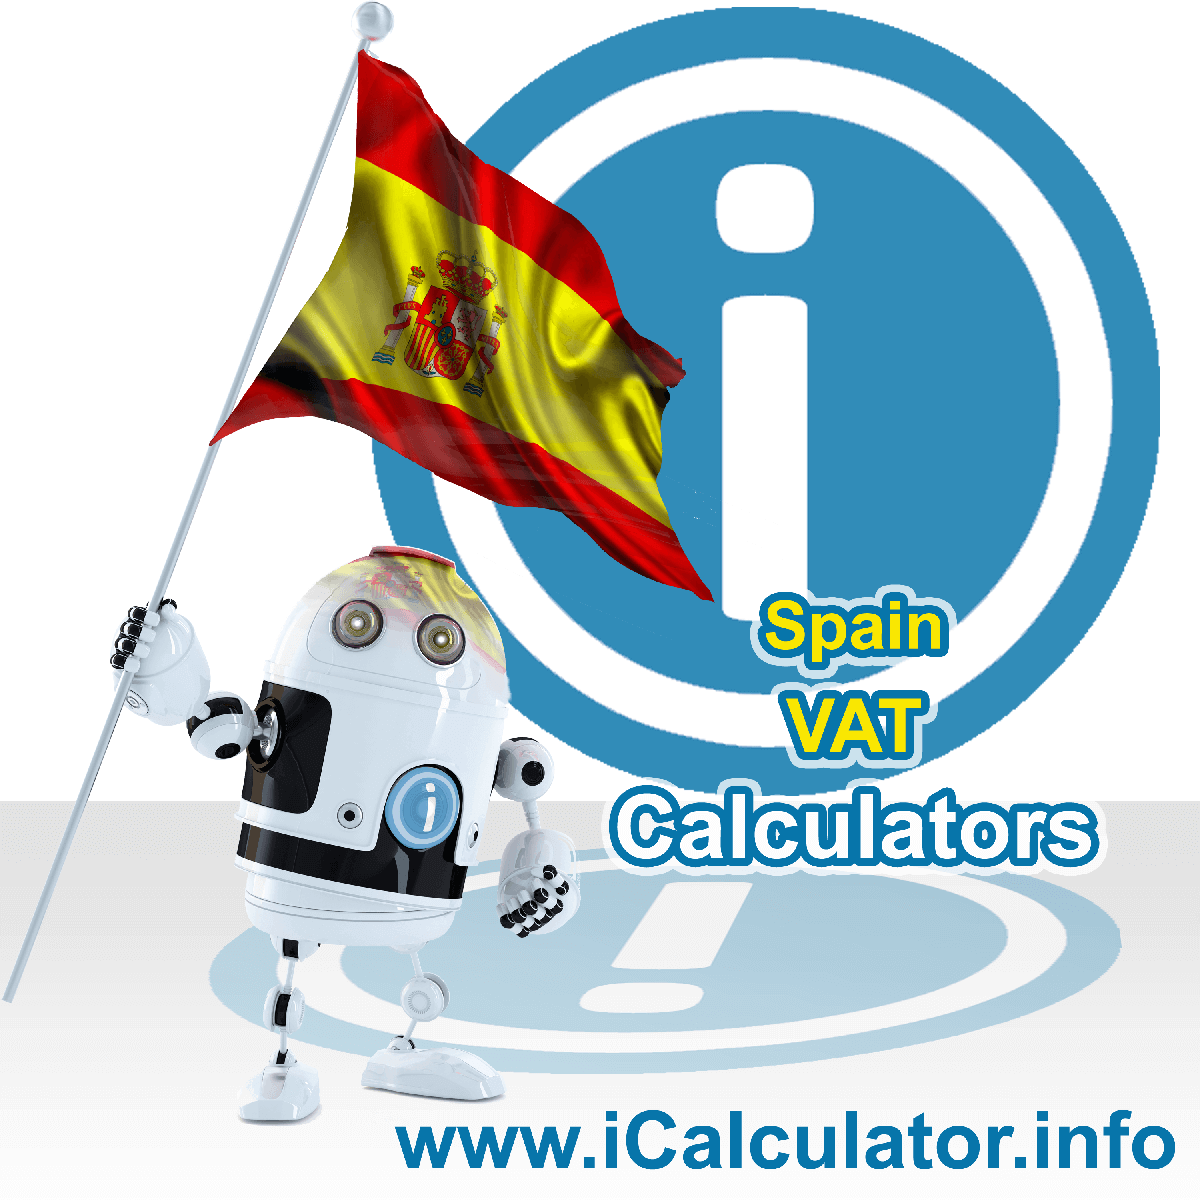 Spain VAT Calculator. This image shows the Spain flag and information relating to the VAT formula used for calculating Value Added Tax in Spain using the Spain VAT Calculator in 2020